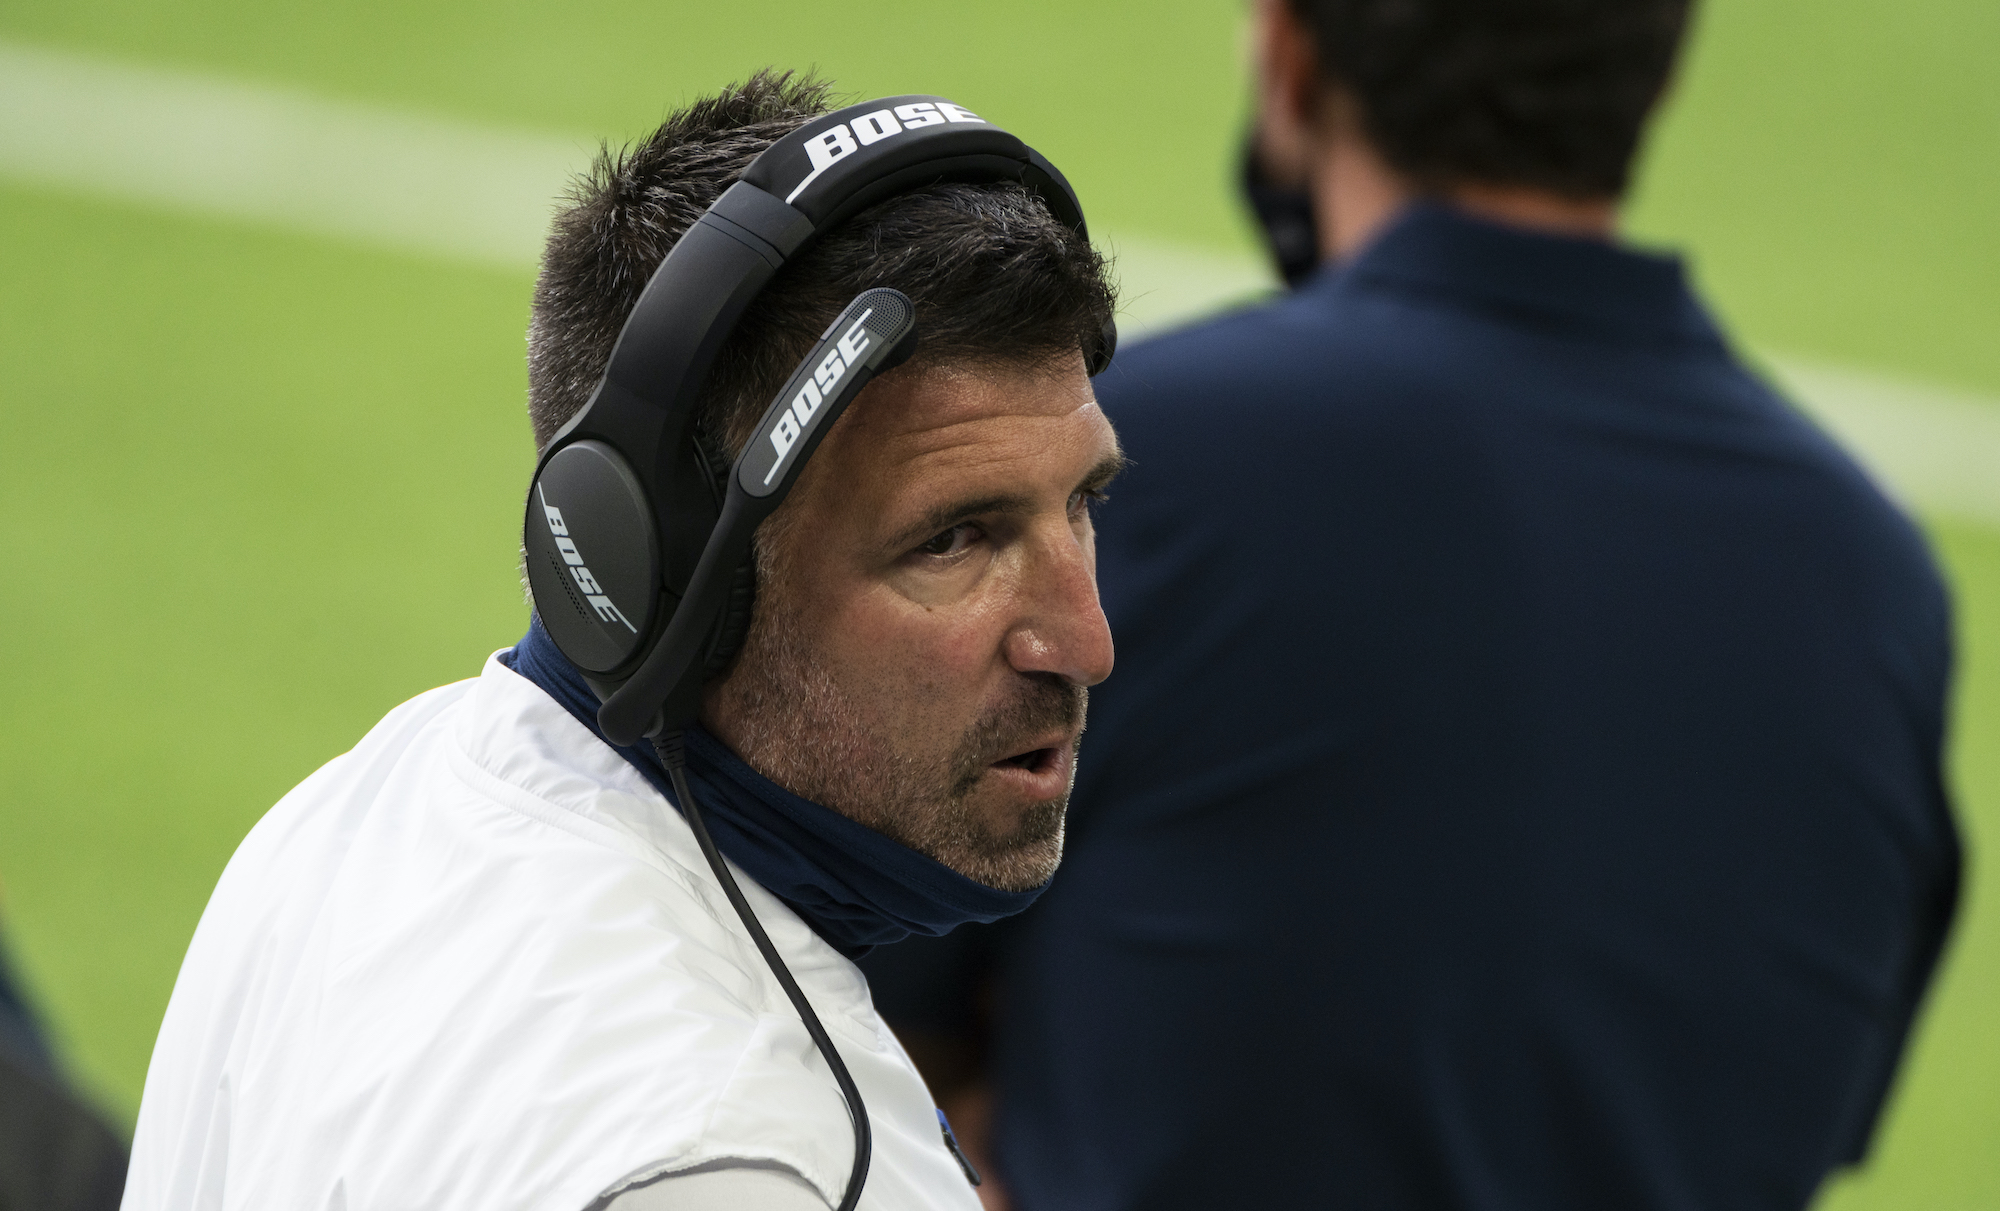 MINNEAPOLIS, MN - SEPTEMBER 27: Head coach Tennessee Titans Mike Vrabel speaks to his team on the sidelines during the second quarter of the game against the Minnesota Vikings at U.S. Bank Stadium on September 27, 2020 in Minneapolis, Minnesota. (Photo by Stephen Maturen/Getty Images)